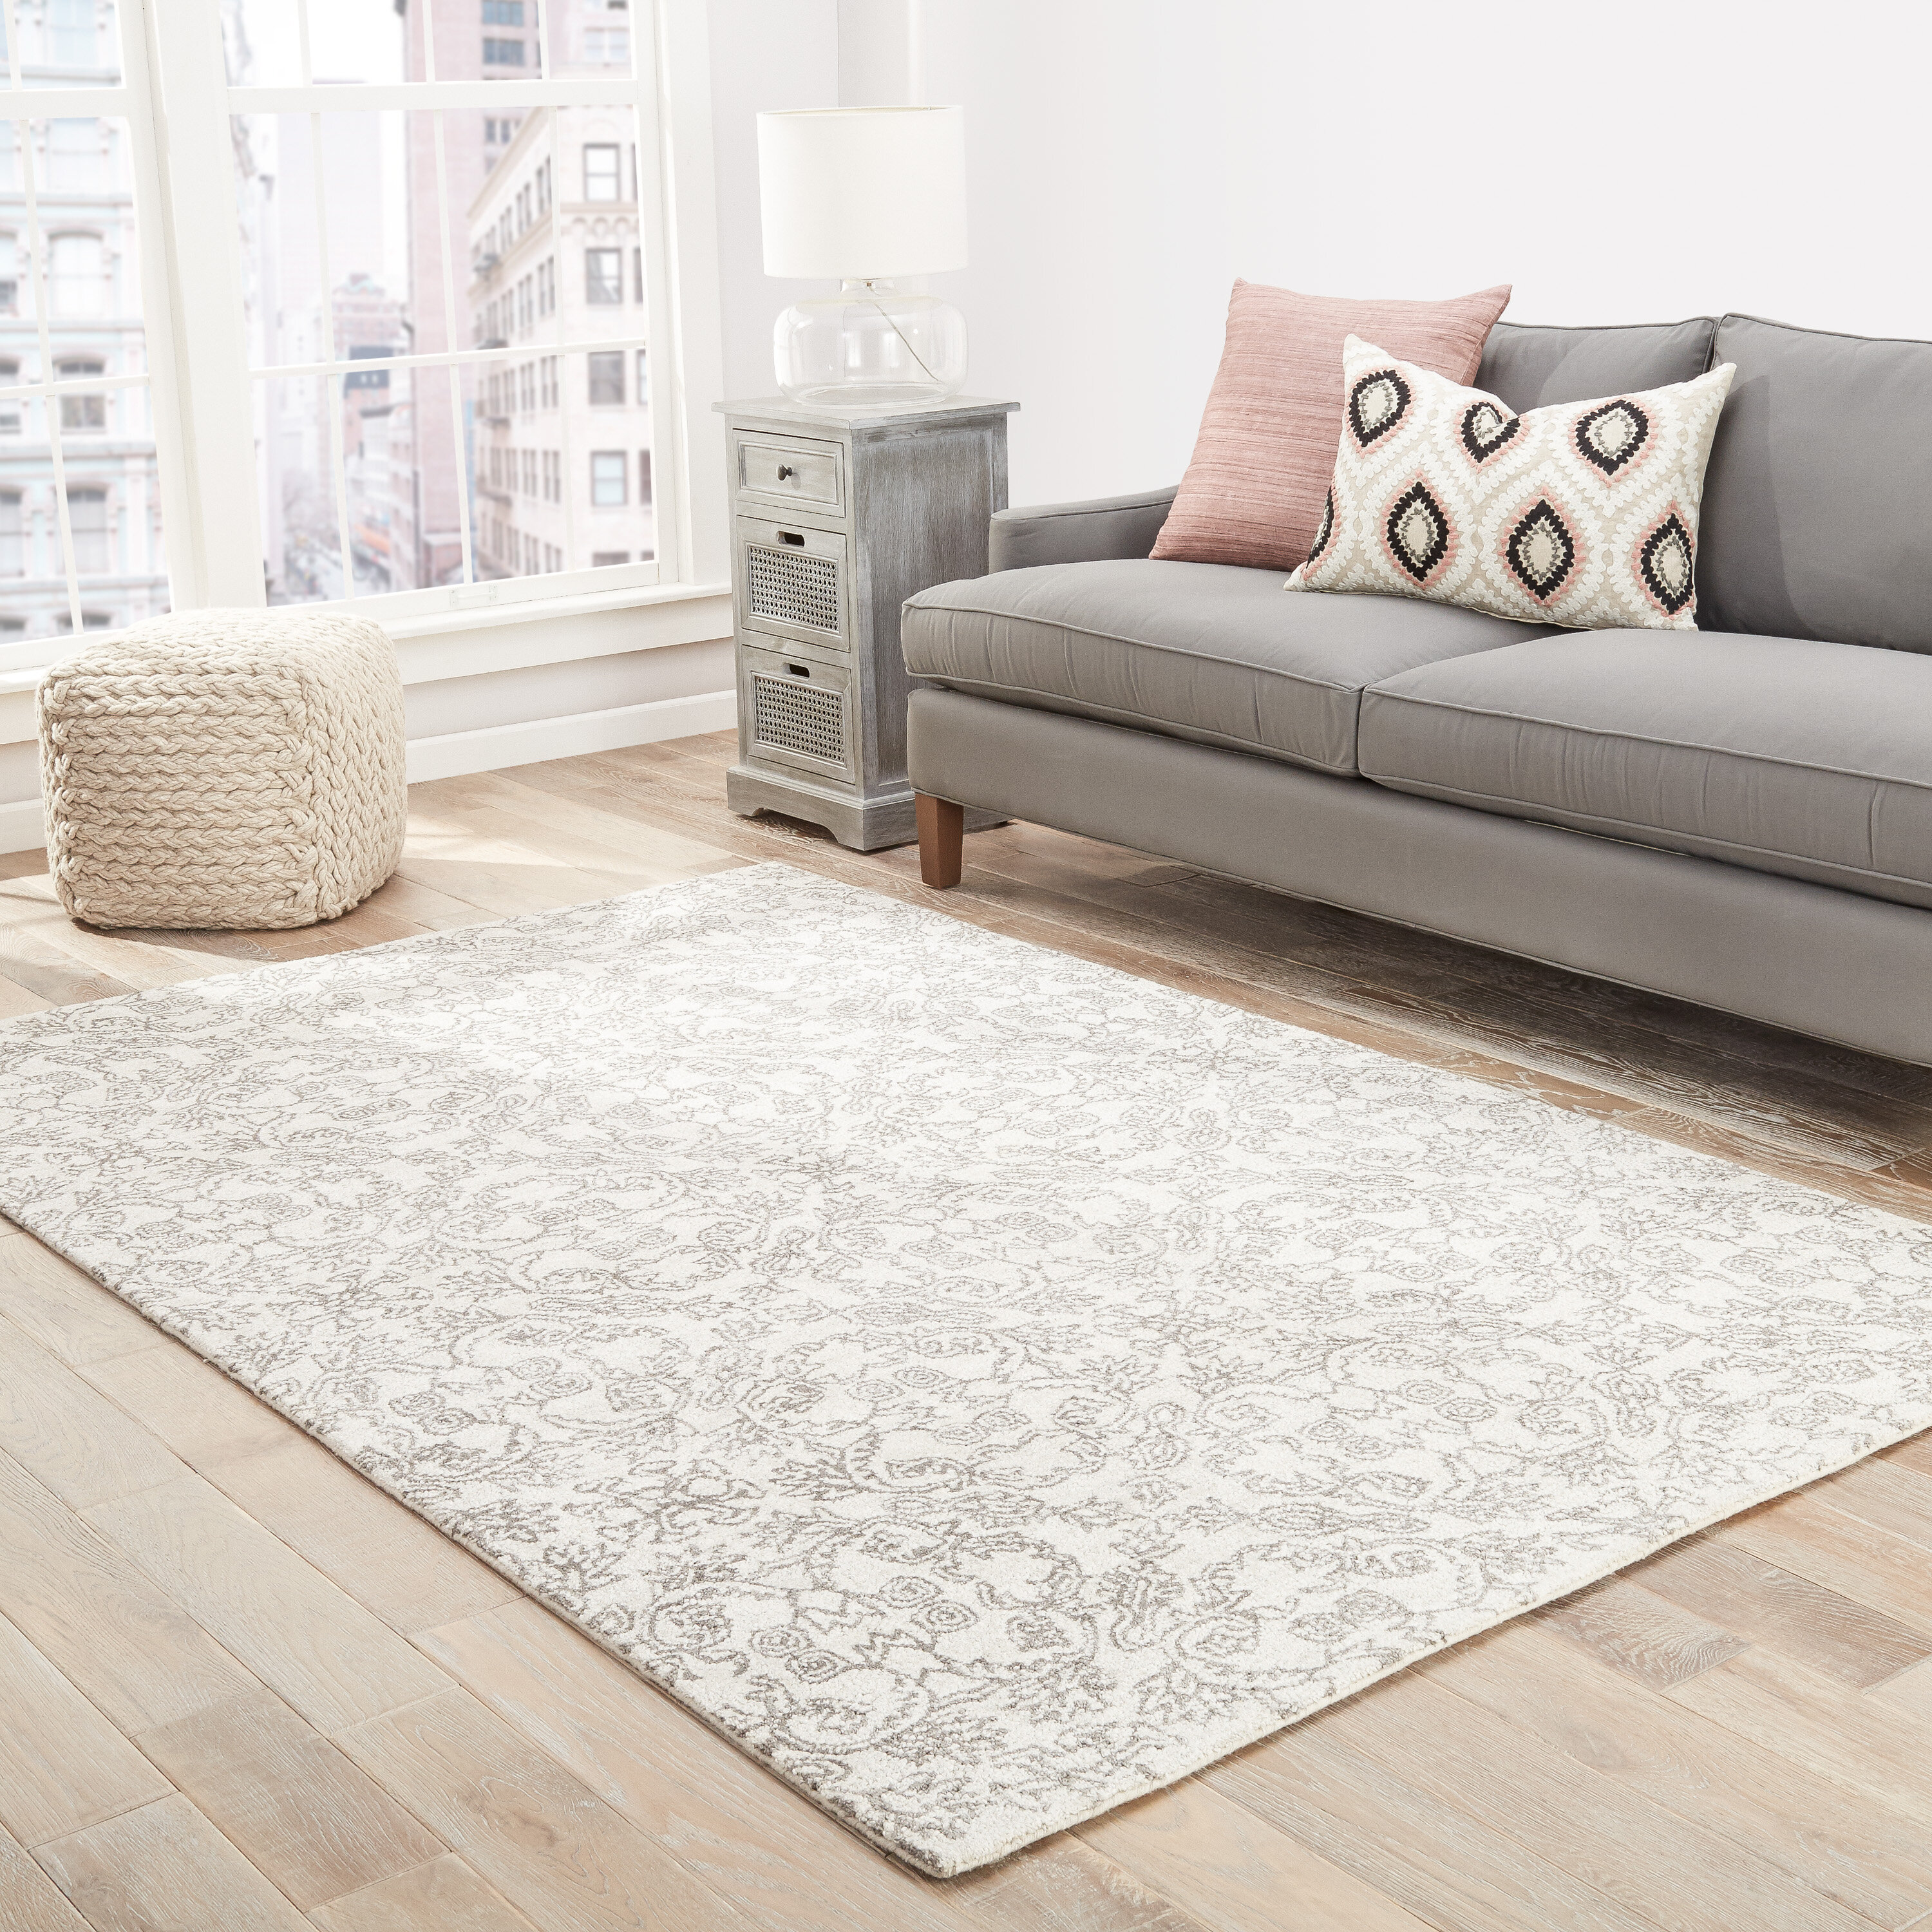 Ophelia & Co. Dylan Hand-Tufted Ivory/Taupe Area Rug | Wayfair